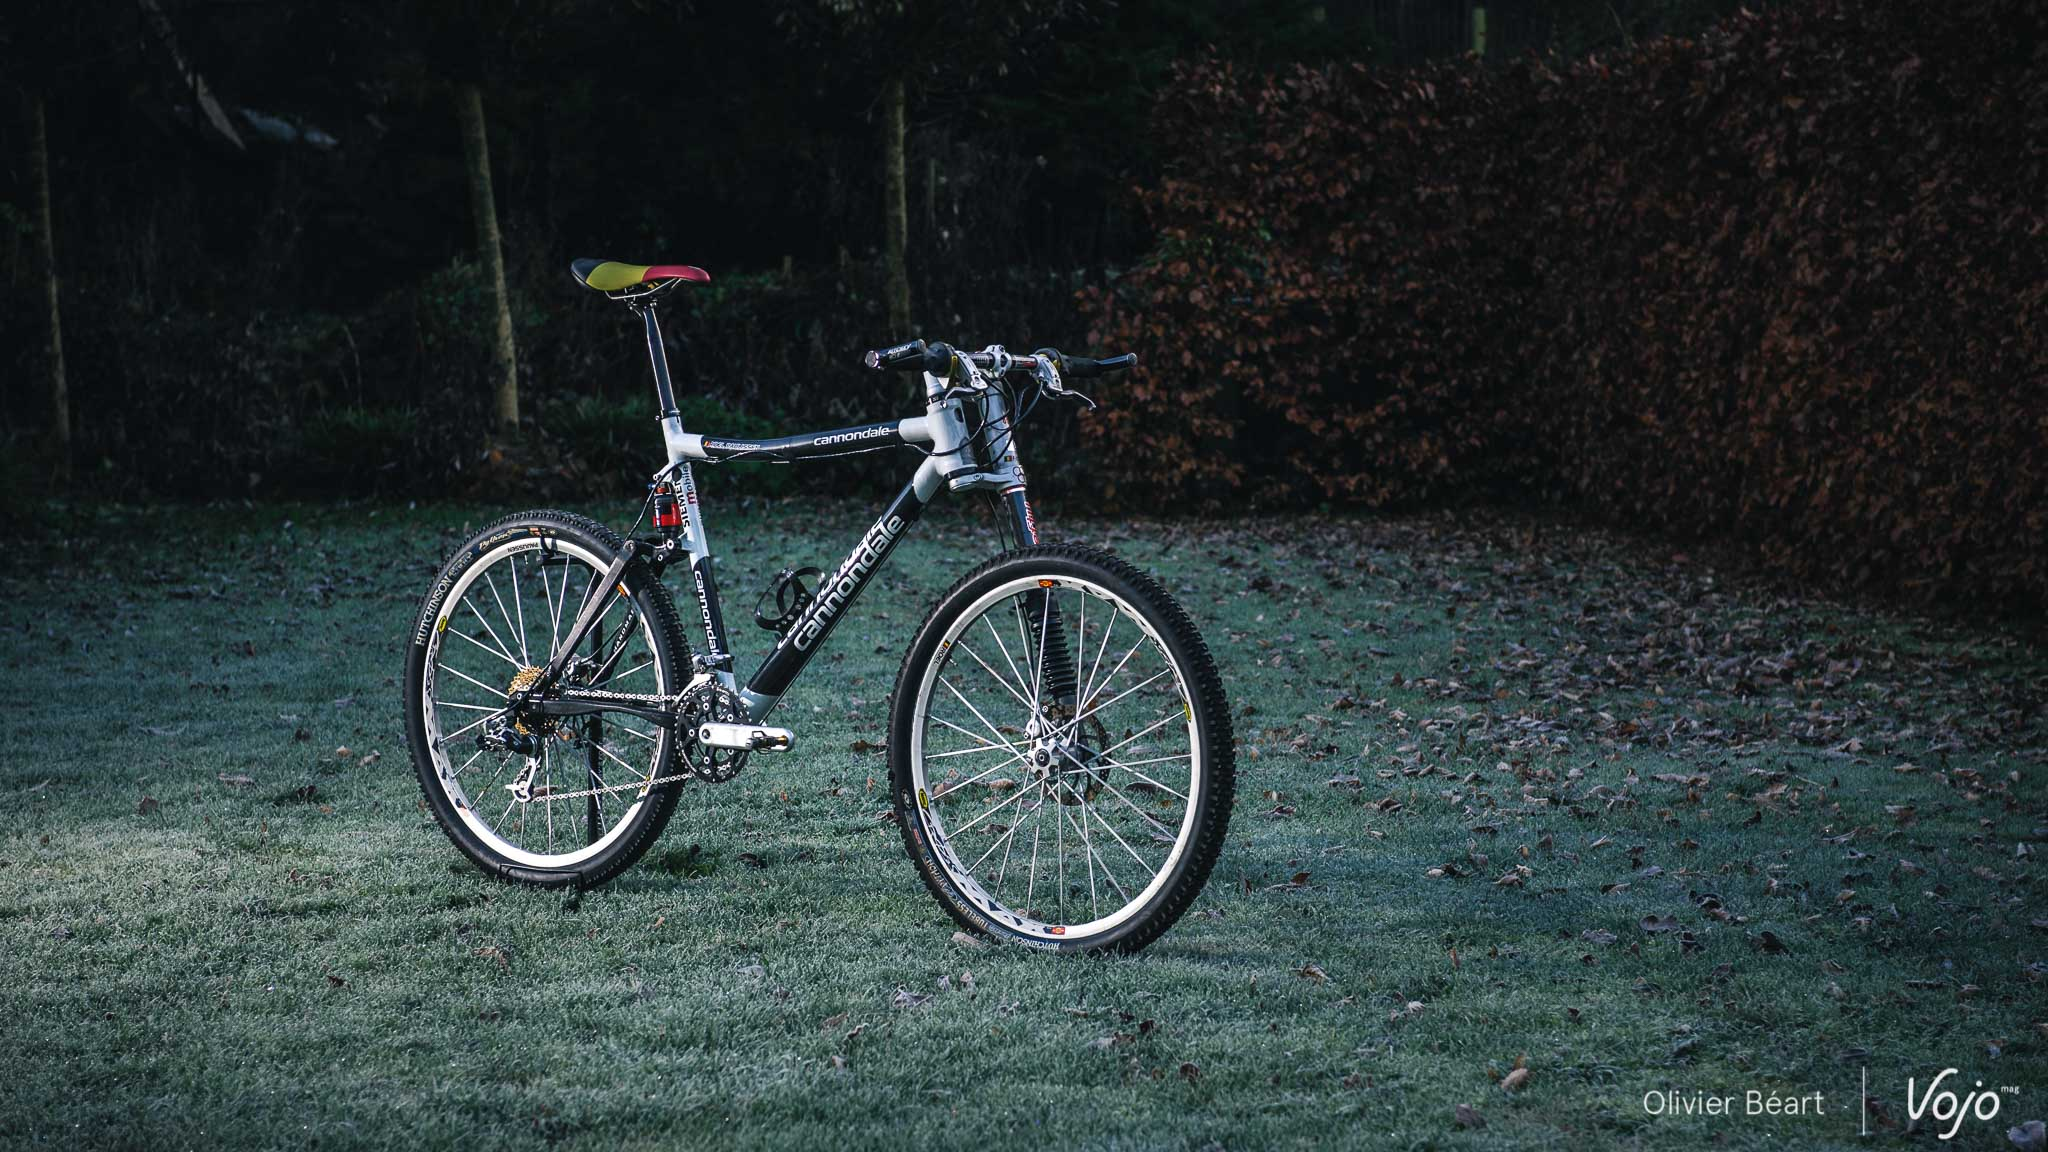 Cannondale_Scalpel_Super6_Roel_Paulissen_Copyright_OBeart_Vojomag-6